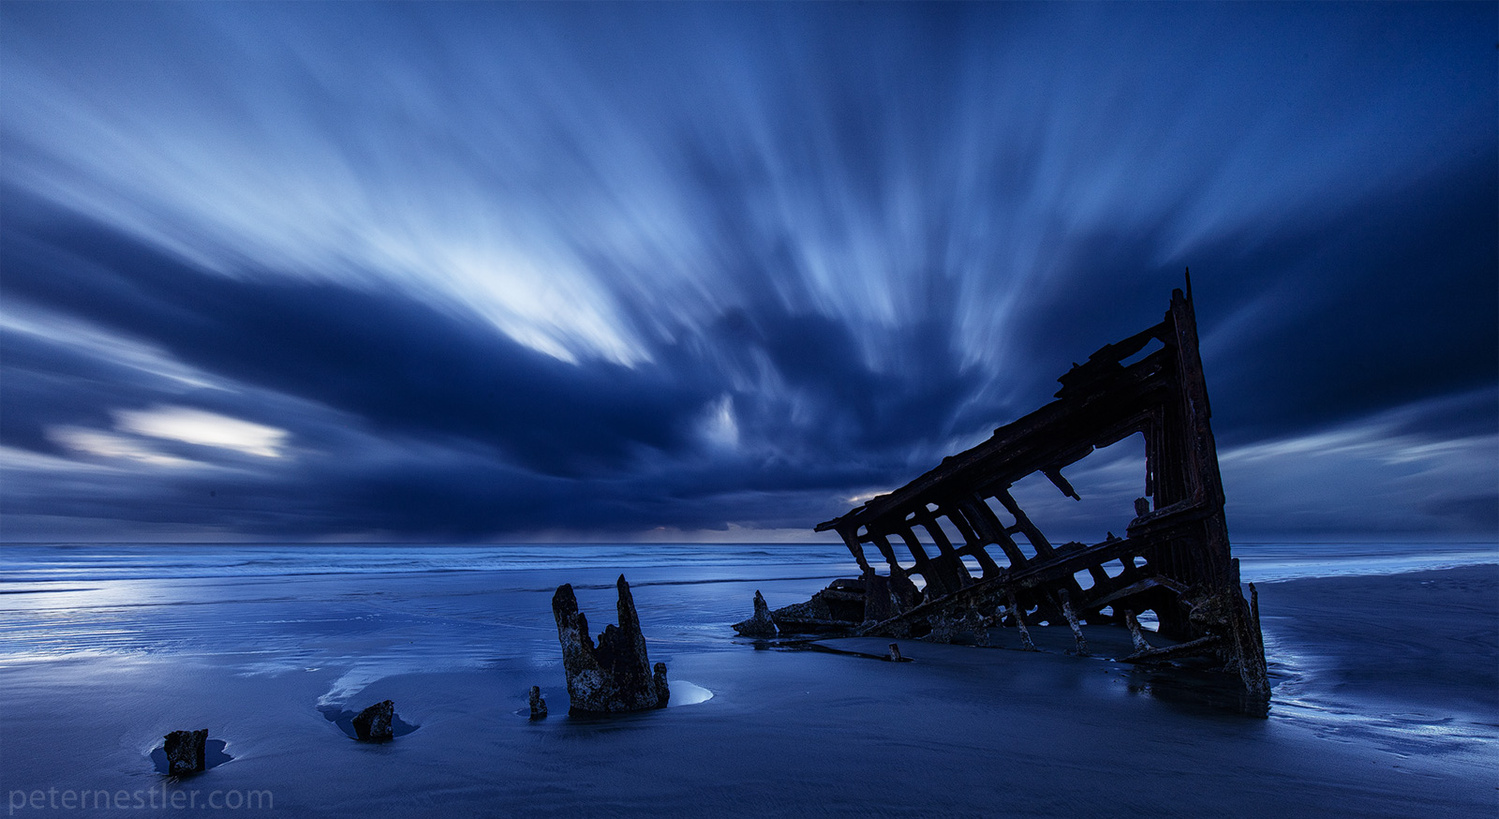 Ship in the Night by Peter Nestler